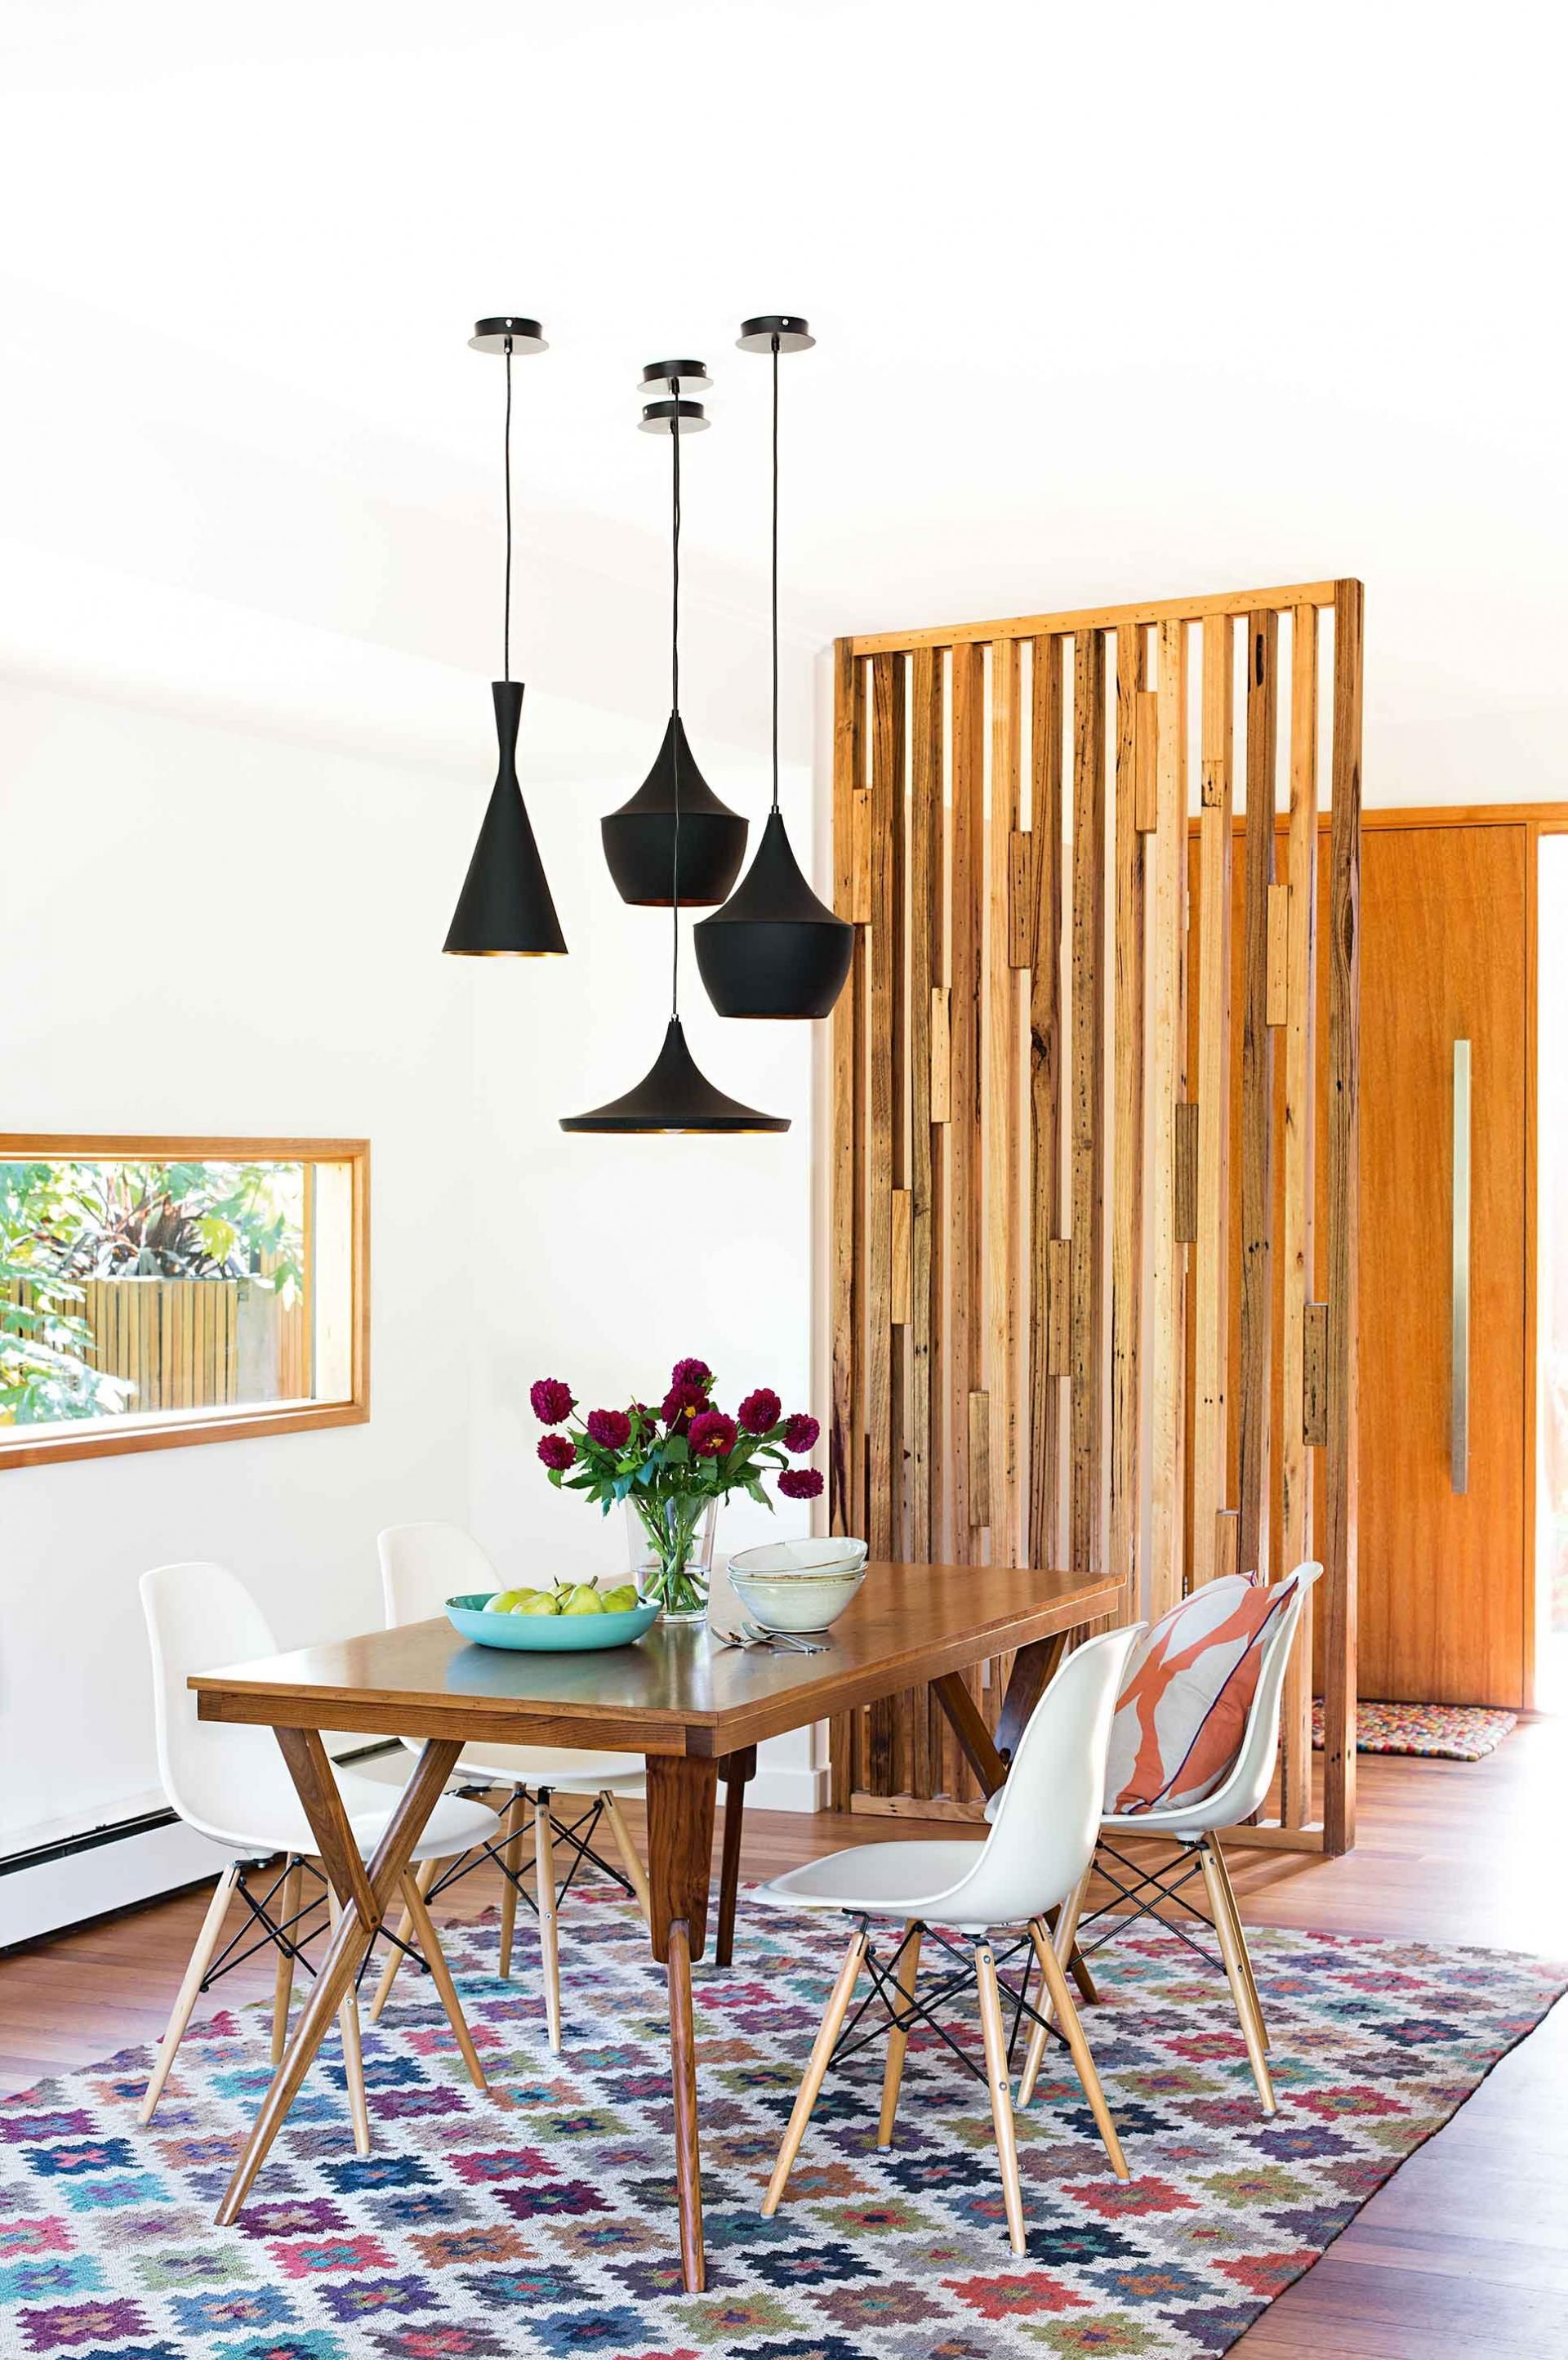 Unexpected lighting adds interest to the dining room.